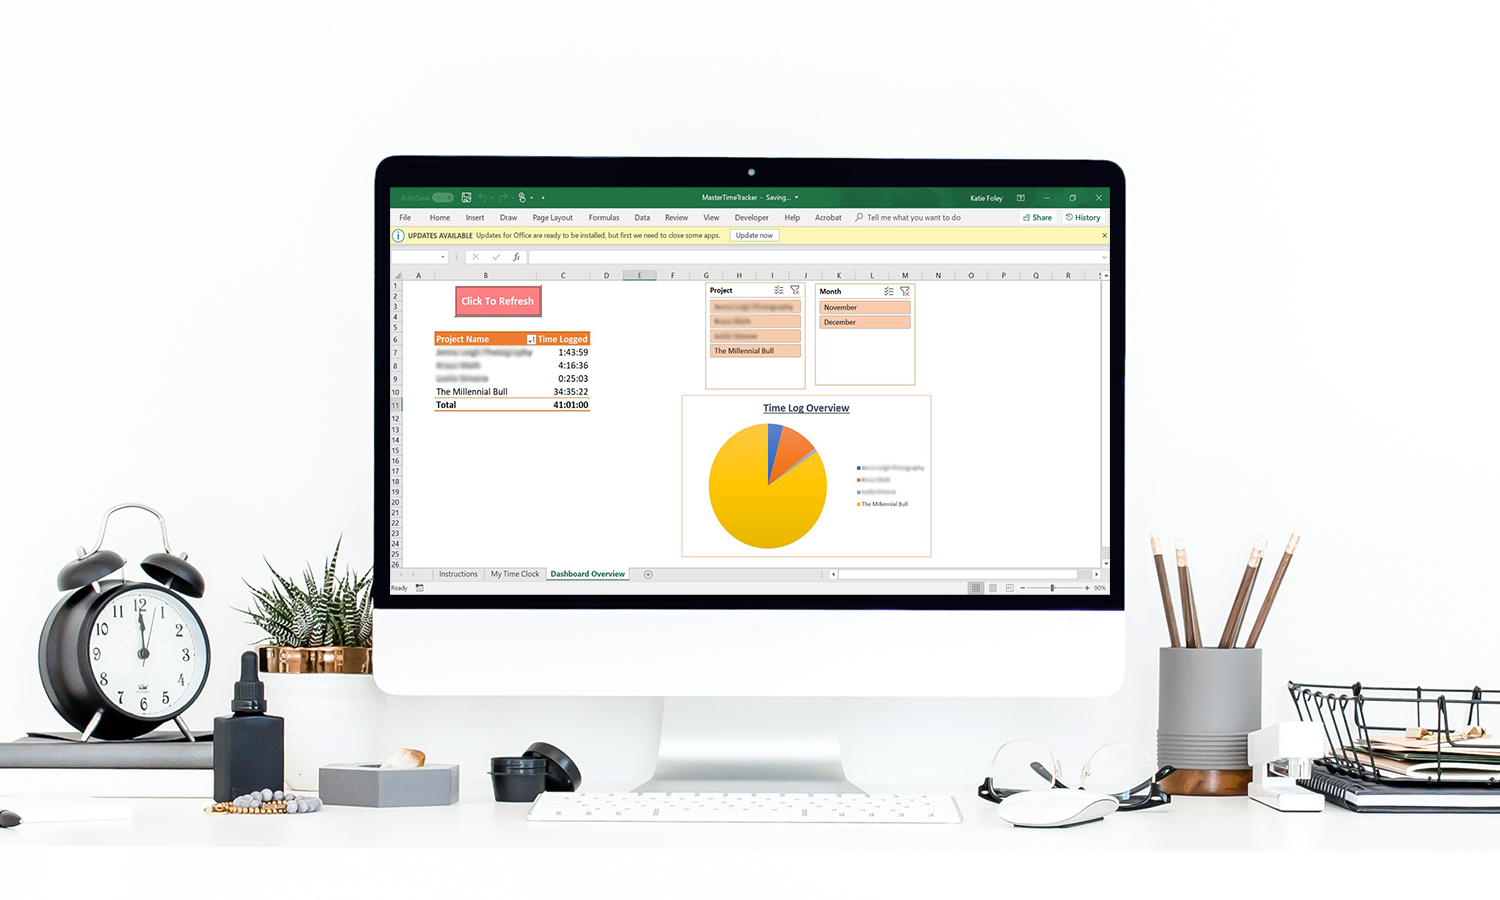 Clean Computer With Excel Dashboard 1500x900b - How To Be Productive Working From Home